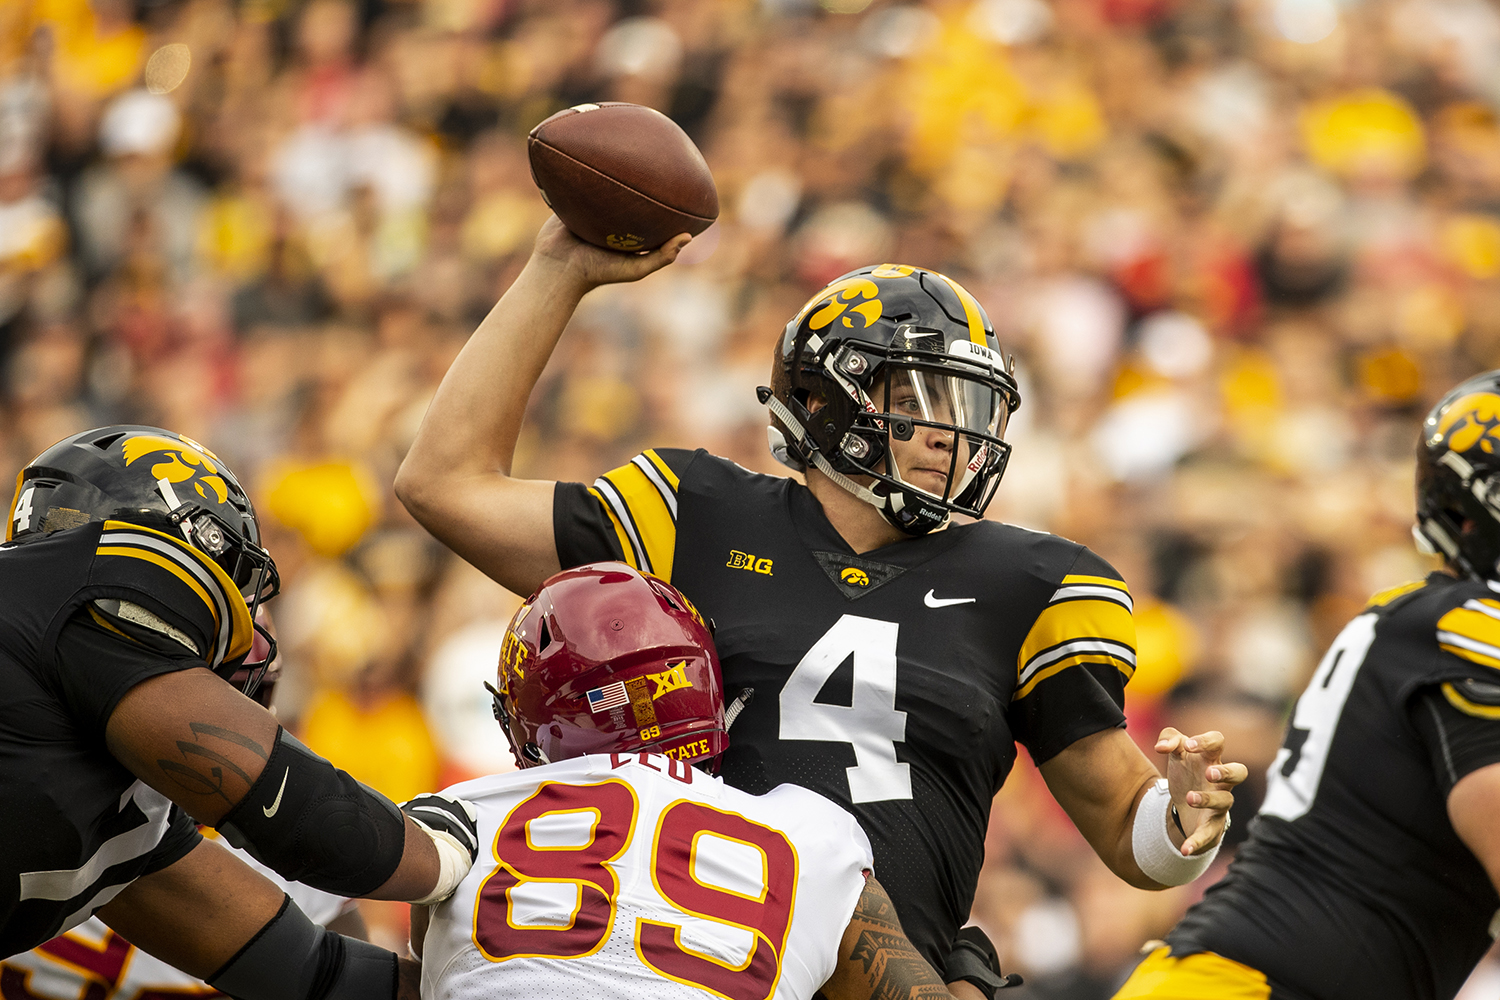 Iowa quarterback Nate Stanley throws under pressure during Iowa's game against Iowa State at Kinnick Stadium on Saturday, September 8, 2018. The Hawkeyes defeated the Cyclones 13-3.